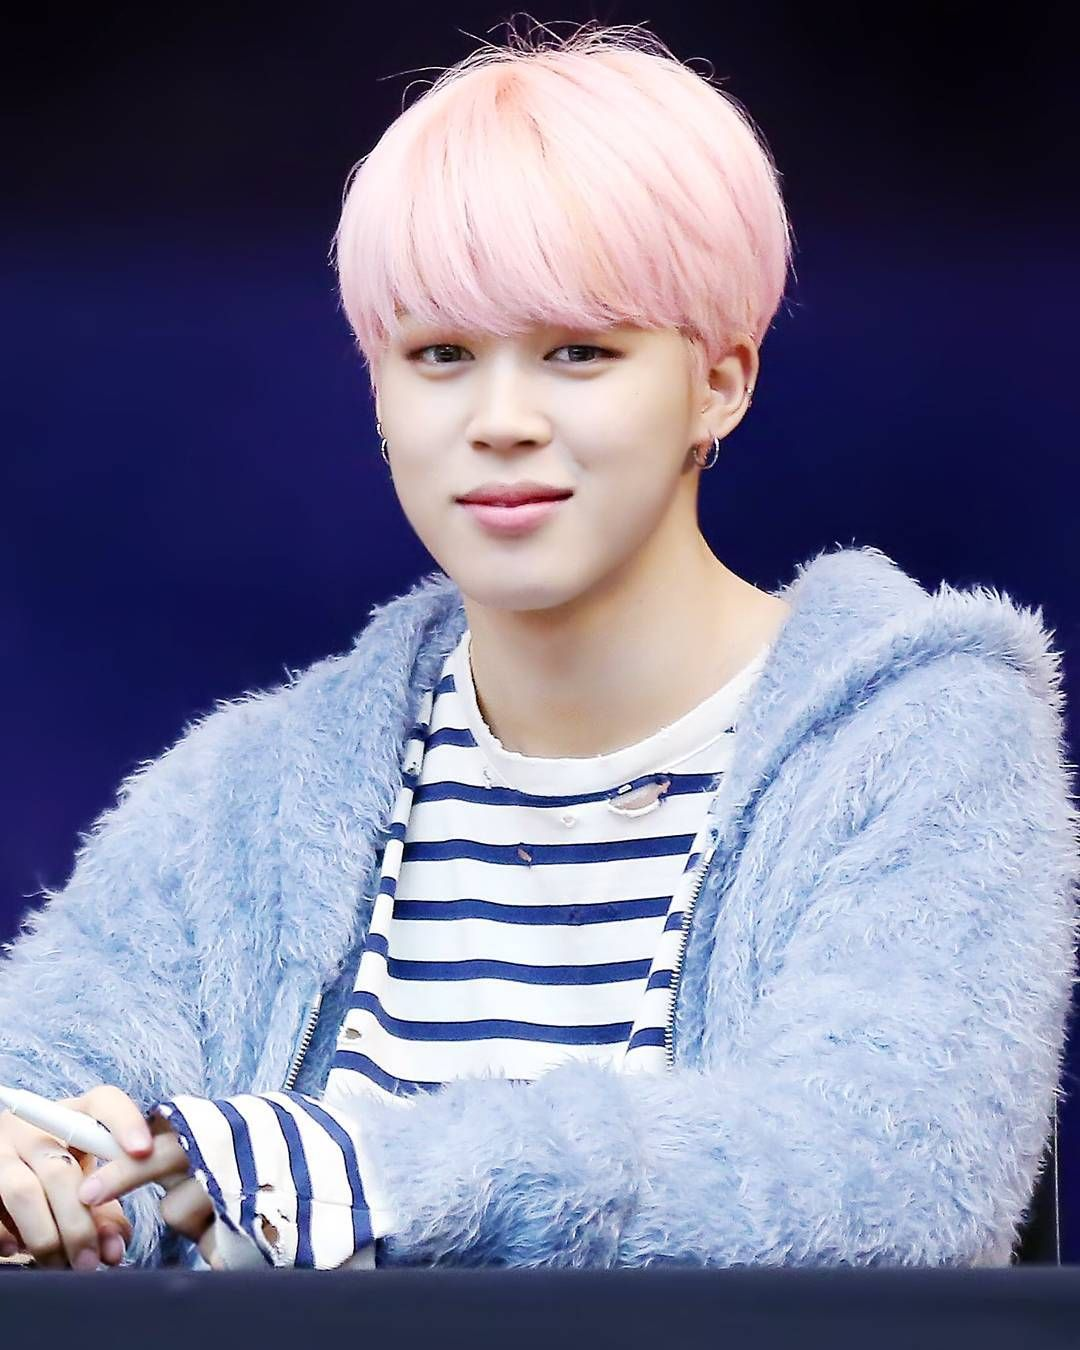 I Love Jimin With Pink Hair 170224 Myeongdong Fansign Event C The